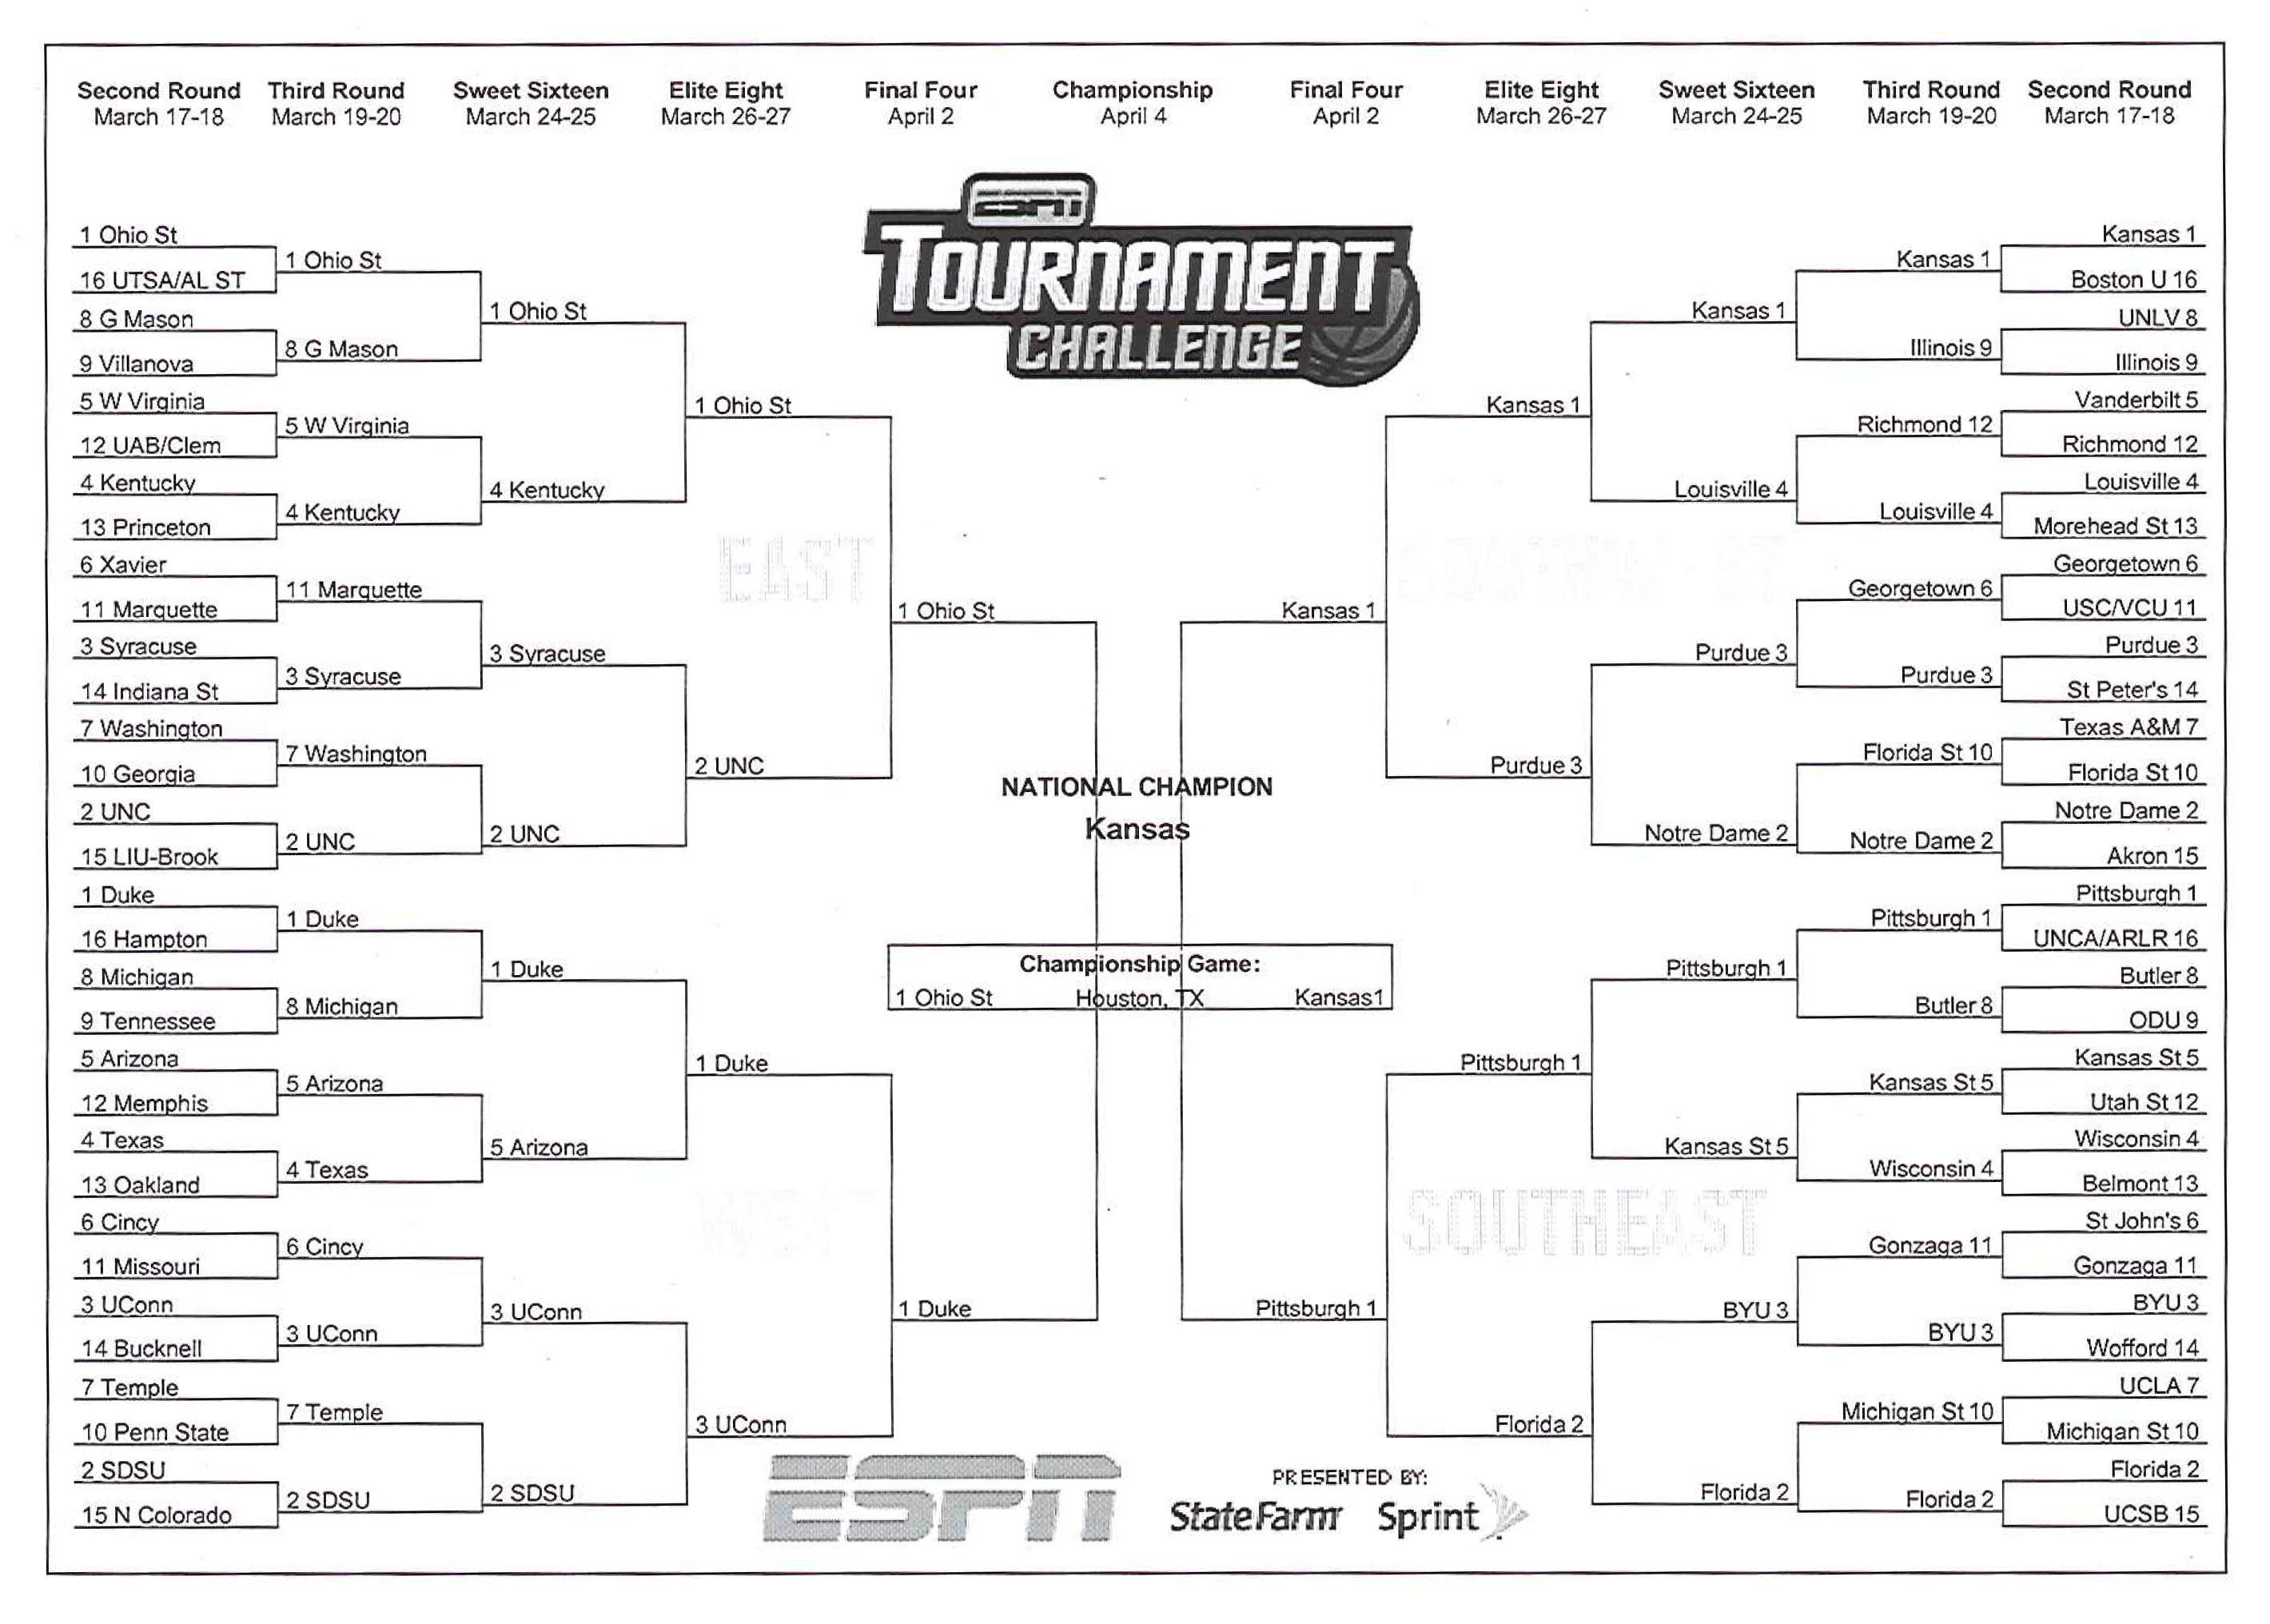 President Obama's 2011 Men's NCAA Basketball Tournament Brackets